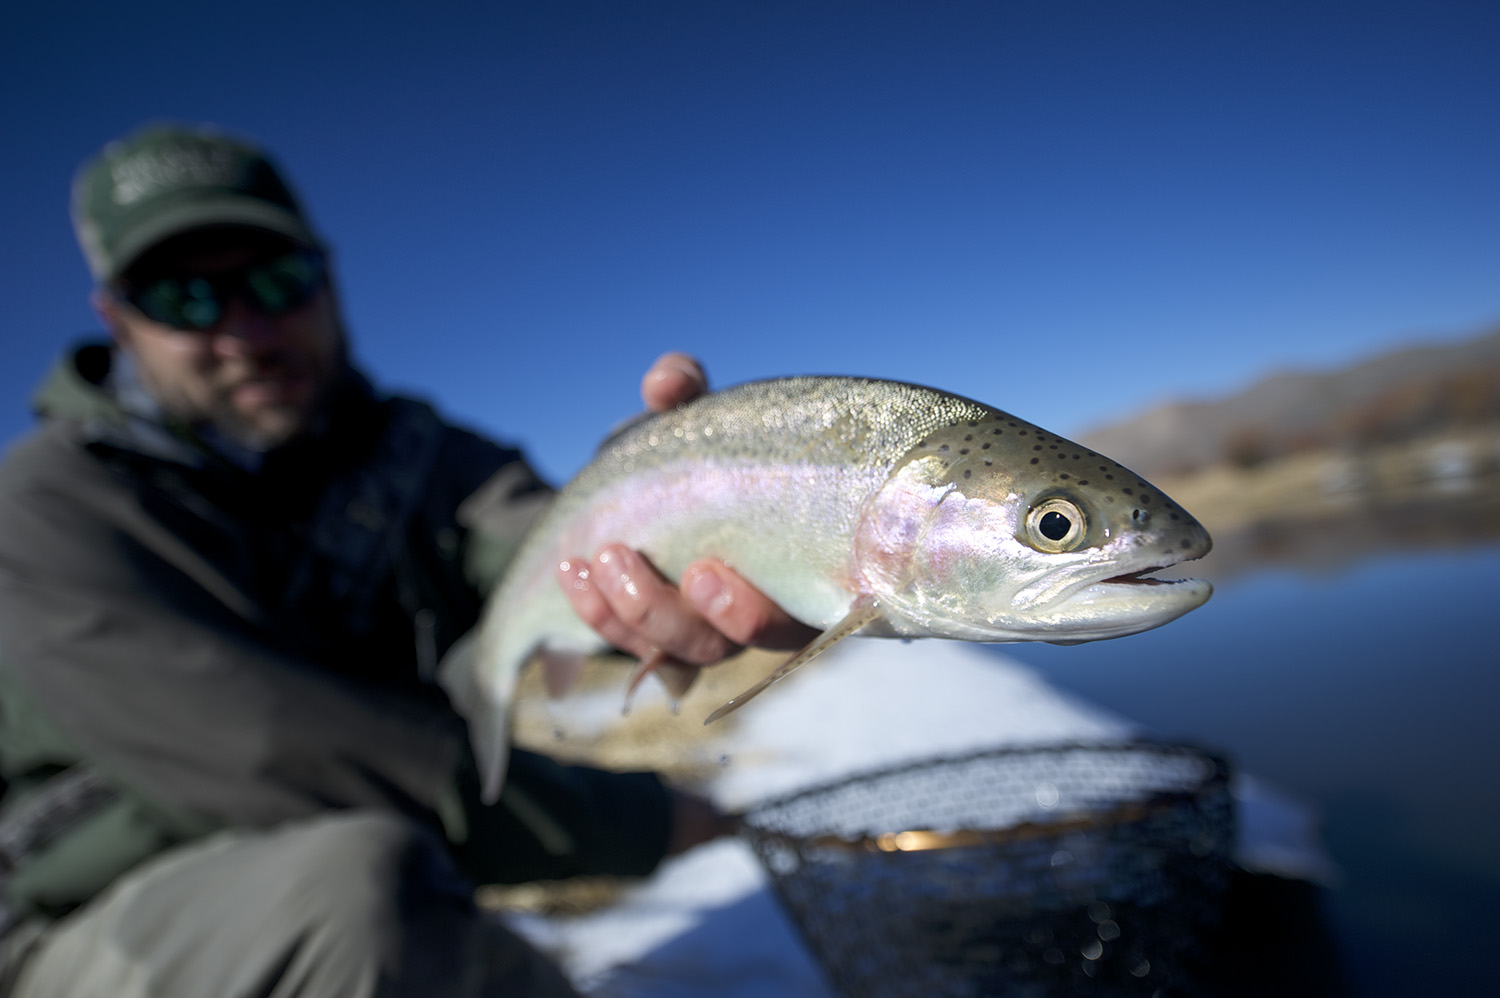 While the majority of fish caught are Browns, there are plenty of healthy Rainbows as well.